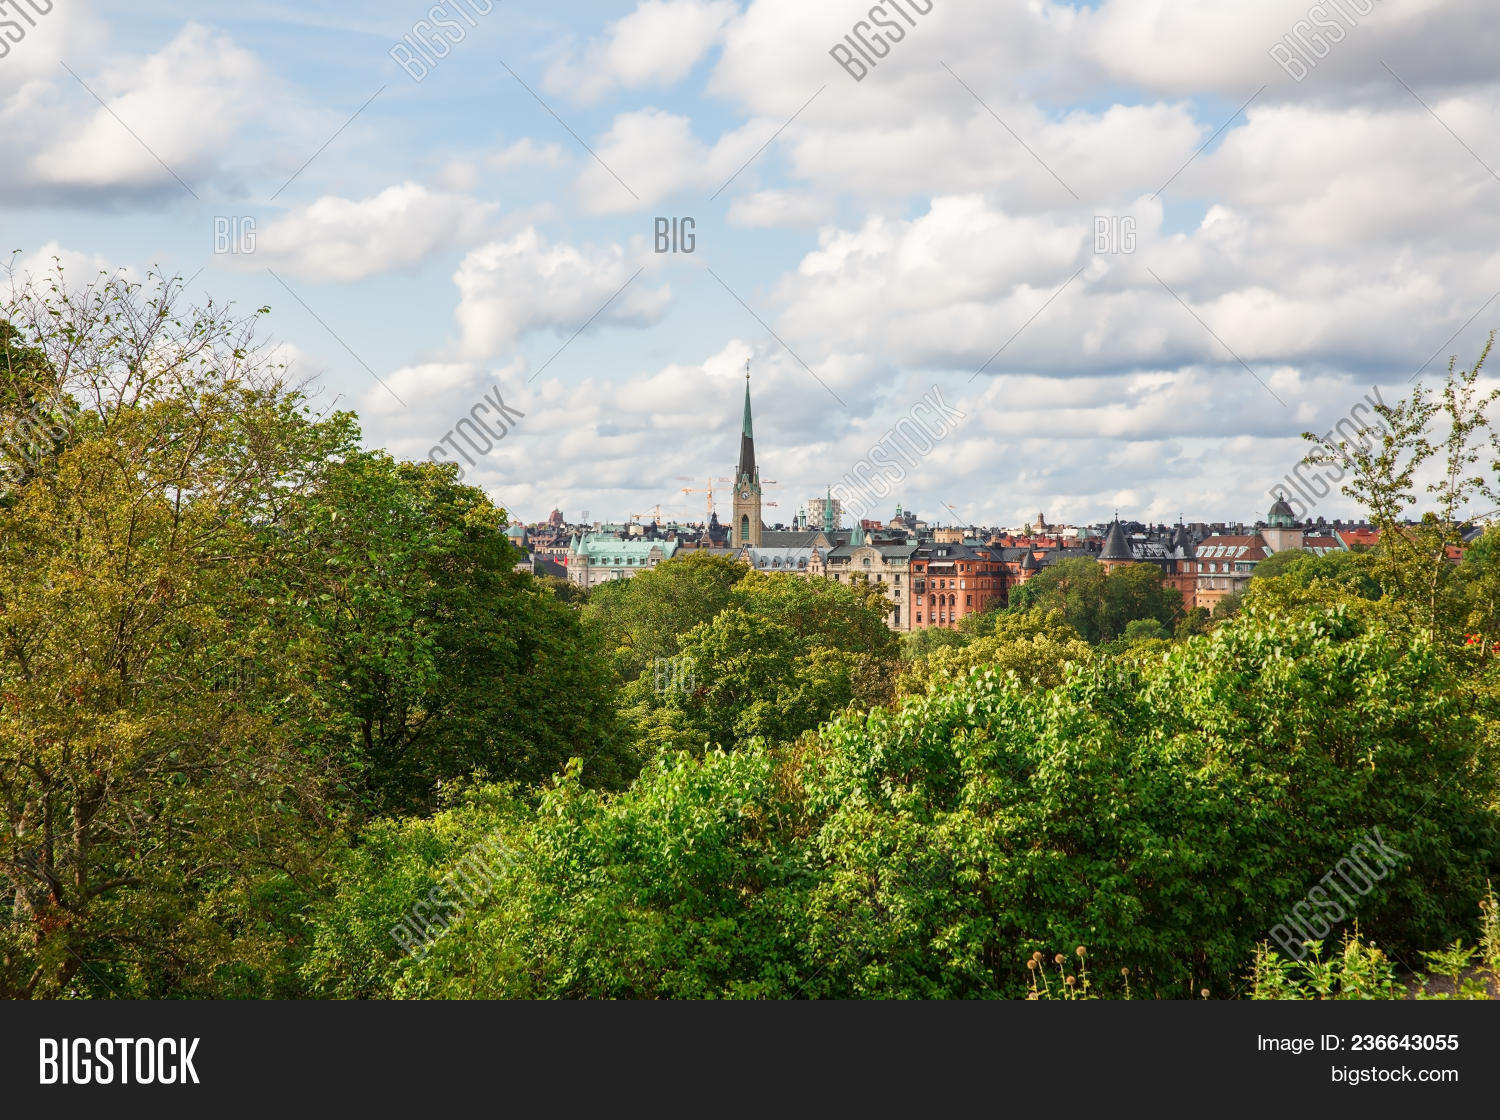 Djurgarden,architecture,blue,building,capital,city,cityscape,cloud,cloudy,europe,european,exterior,facade,famous,green,home,house,island,landscape,leaves,nature,outdoor,panorama,red,scandinavia,scandinavian,scenery,scenic,sightseeing,sky,spire,steeple,stockholm,summer,sunlight,sweden,swedish,top,tourism,tower,town,townscape,travel,tree,urban,view